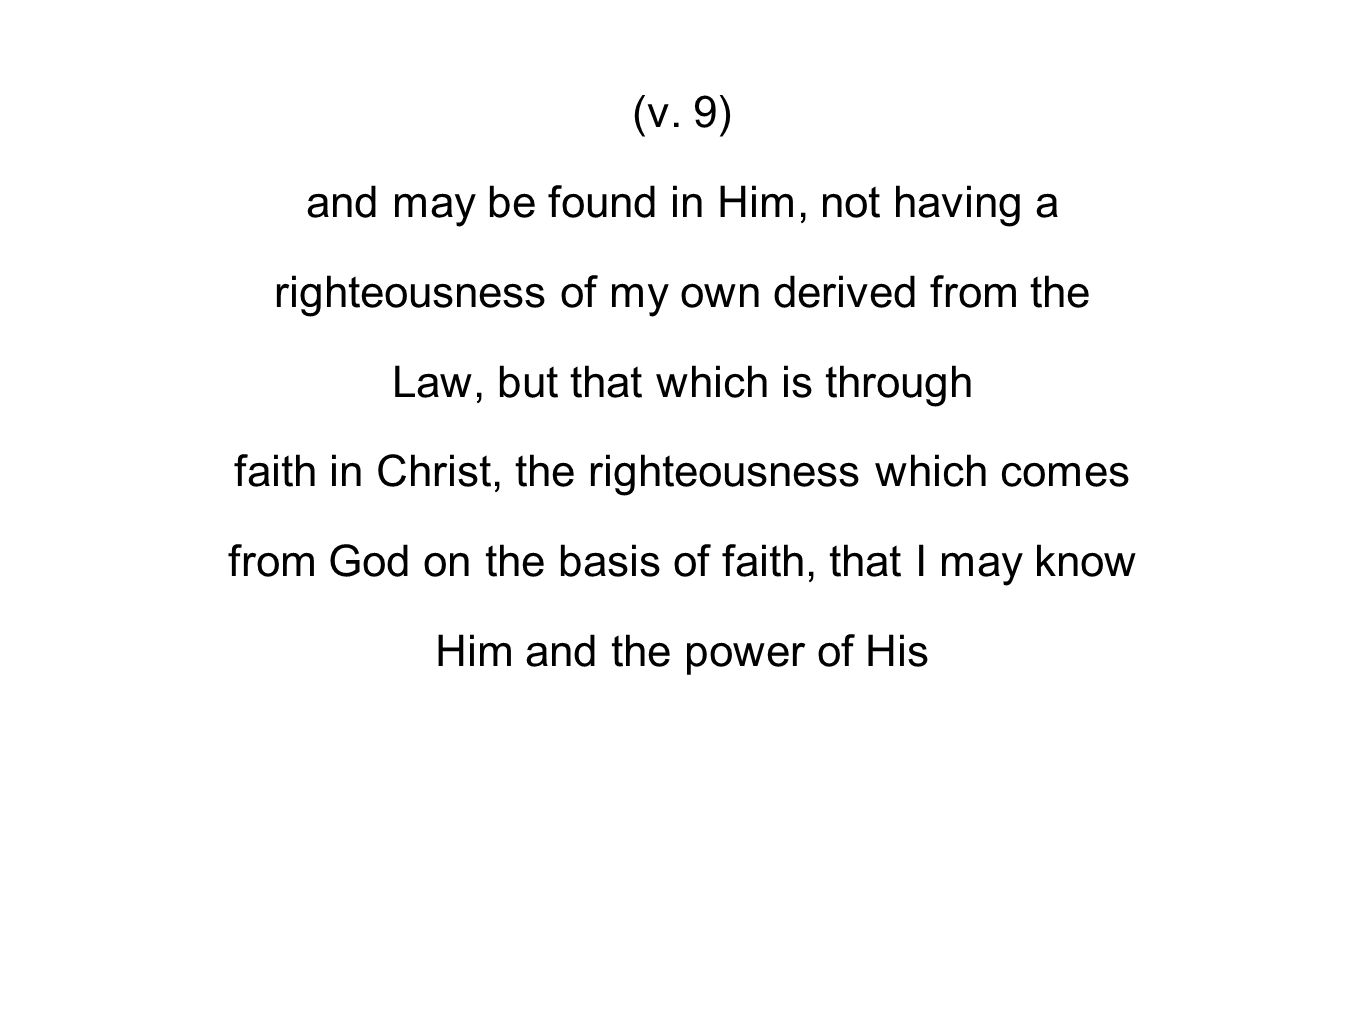 (v. 9) and may be found in Him, not having a righteousness of my own derived from the Law, but that which is through faith in Christ, the righteousnes